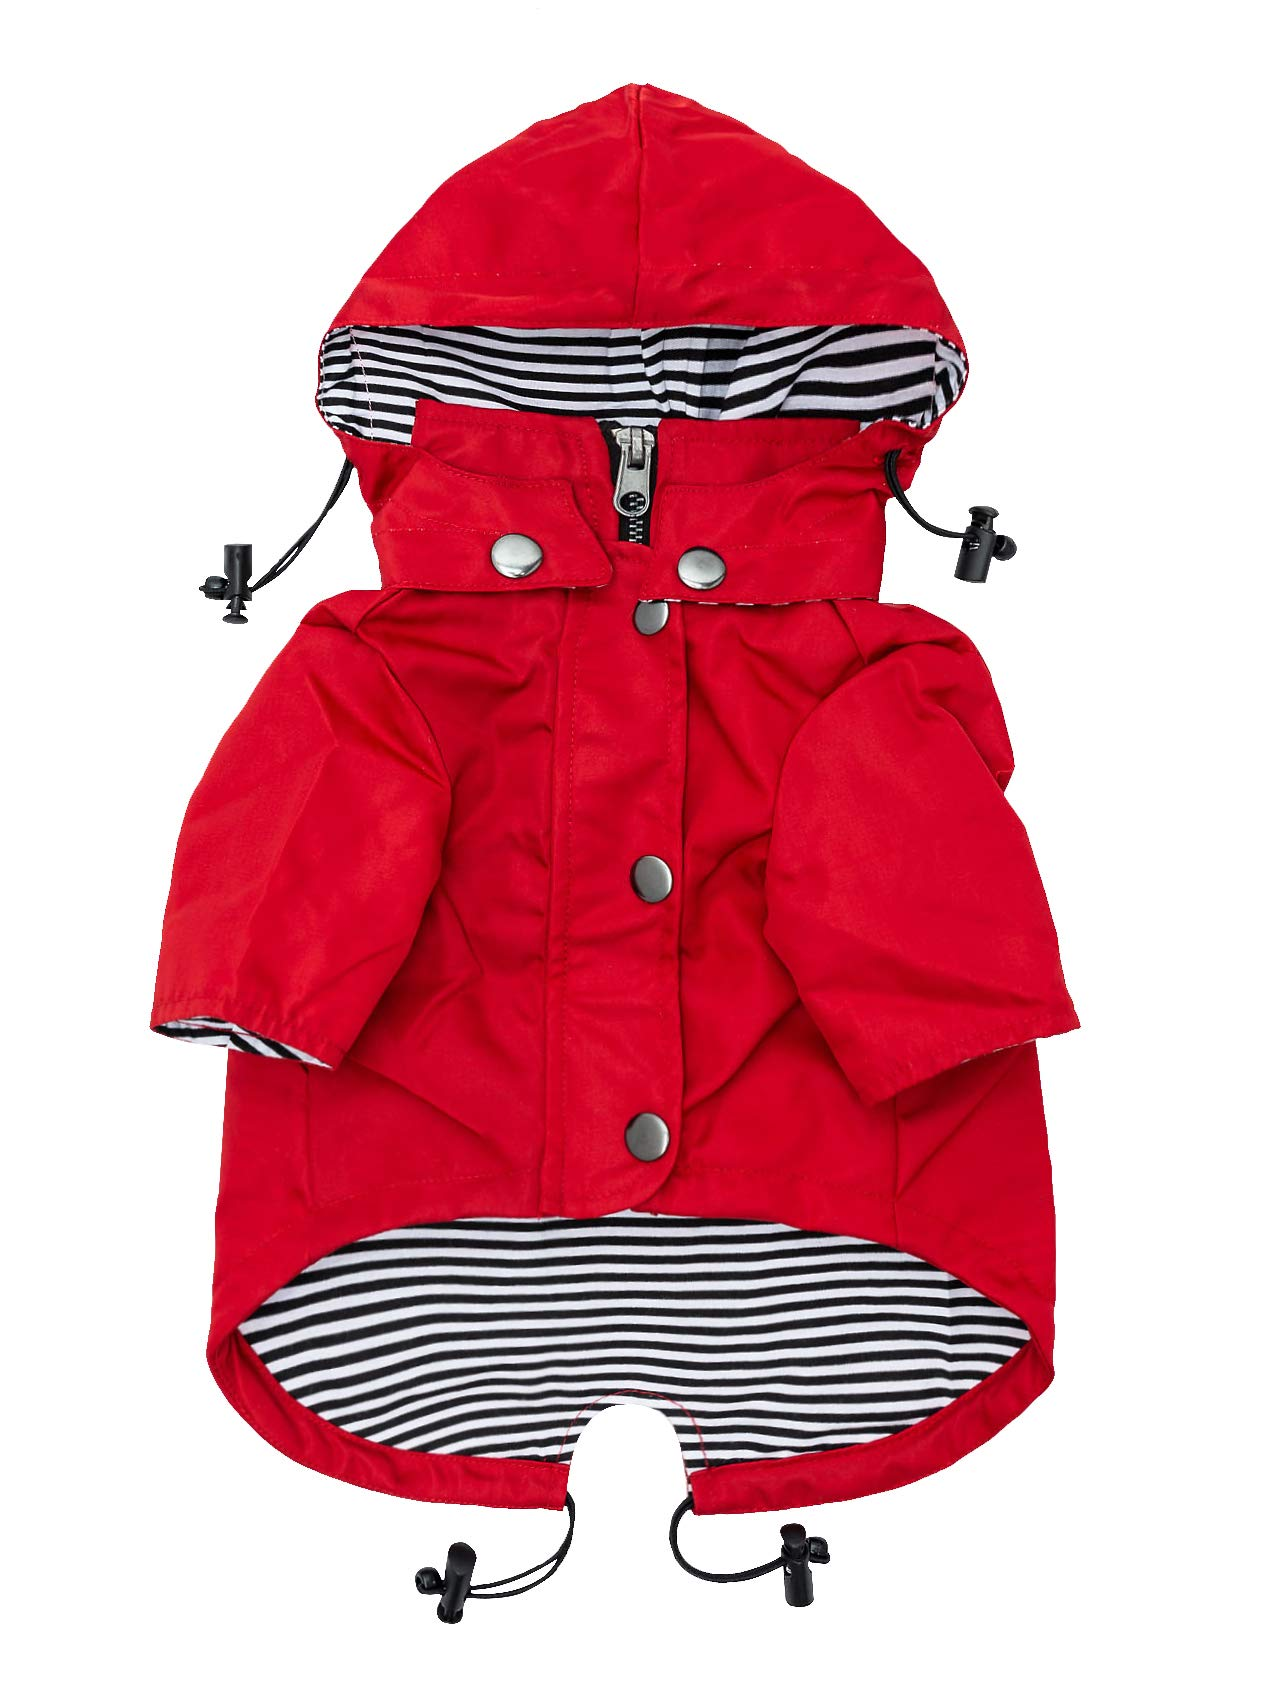 Ellie Dog Wear Red Zip Up Dog Raincoat with Reflective Buttons, Pockets, Rain/Water Resistant, Adjustable Drawstring, Removable Hoodie - Size XS to XXL Available - Stylish Premium Dog Raincoats (M) by Ellie Dog Wear